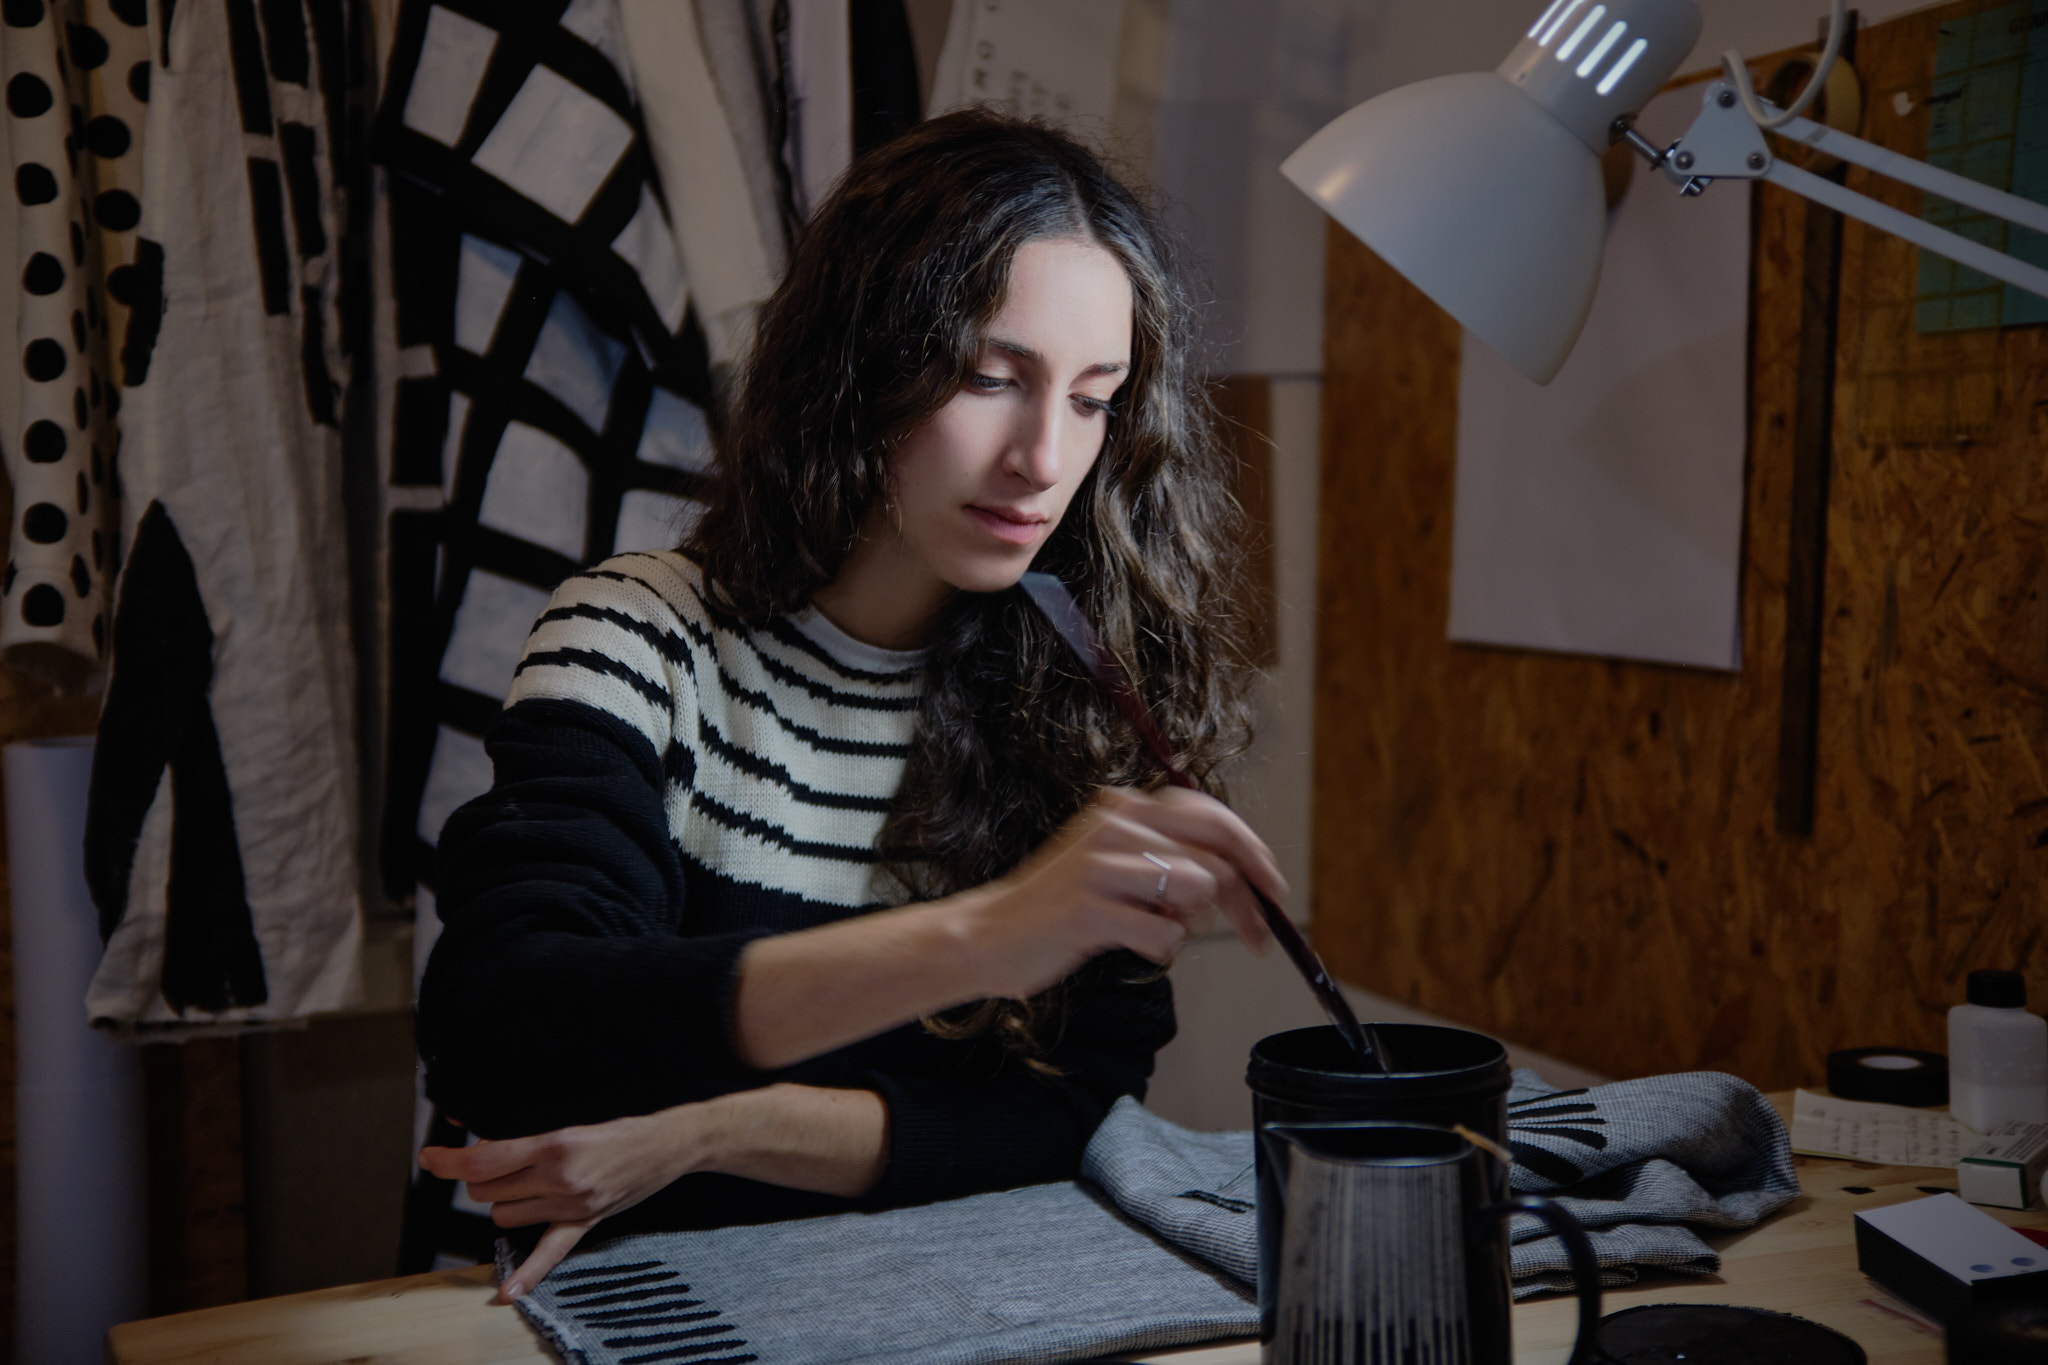 A woman (Alessandra) with long brown hair and wearing a white and black striped sweater is painting fabric at a desk